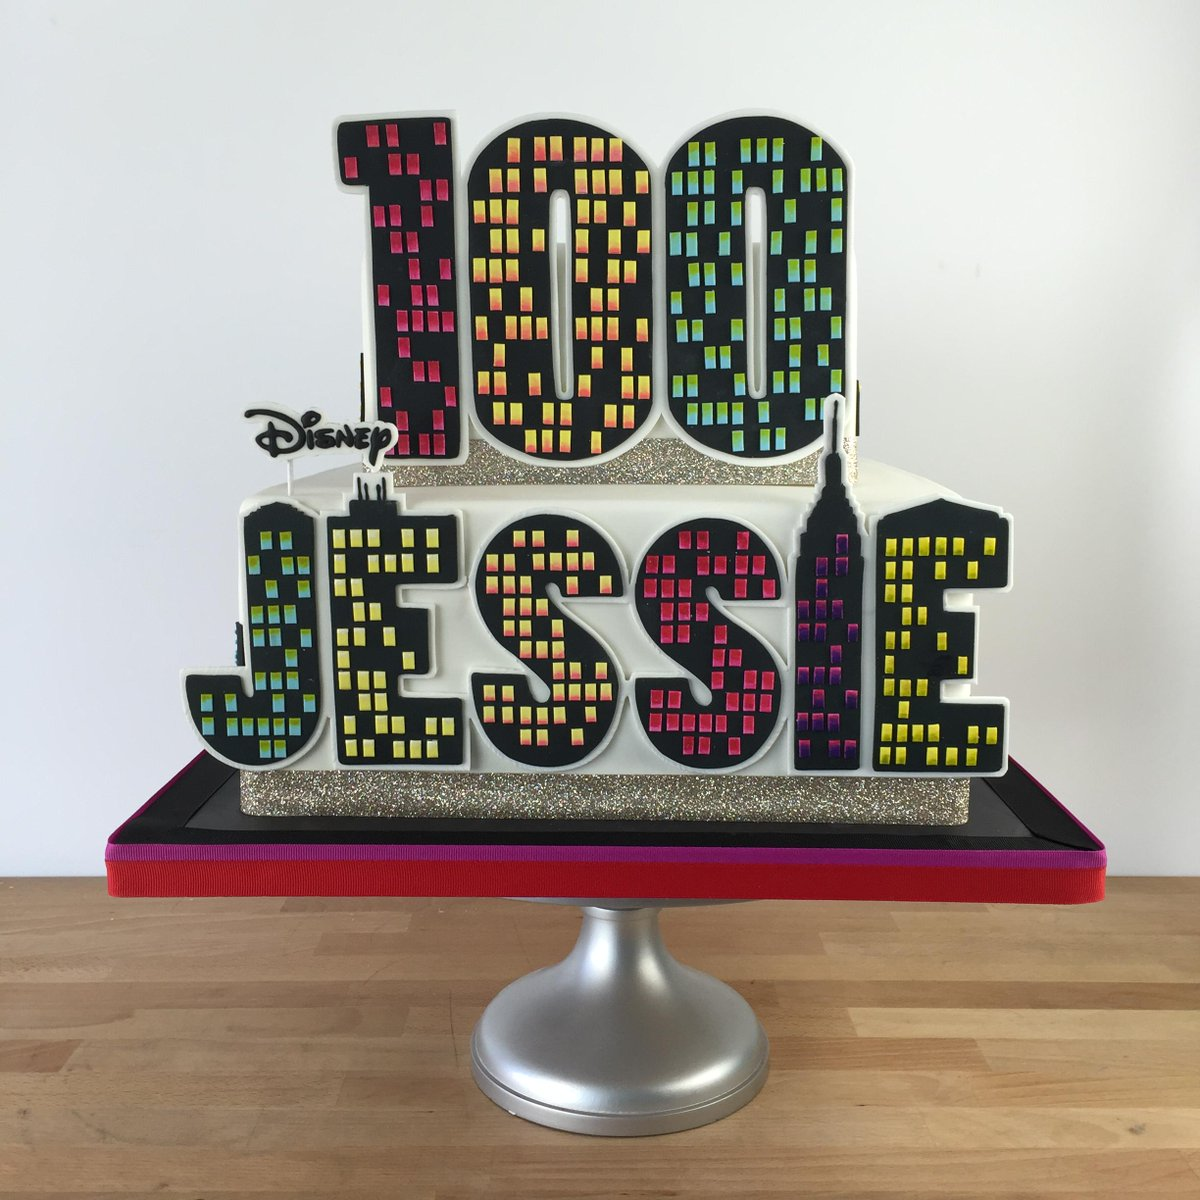 Congrats to @disneychannel's show Jesse on 100 episodes! We were honored to make the cake. http://t.co/bTNizAWaZ4 http://t.co/b2LuDgPEYS